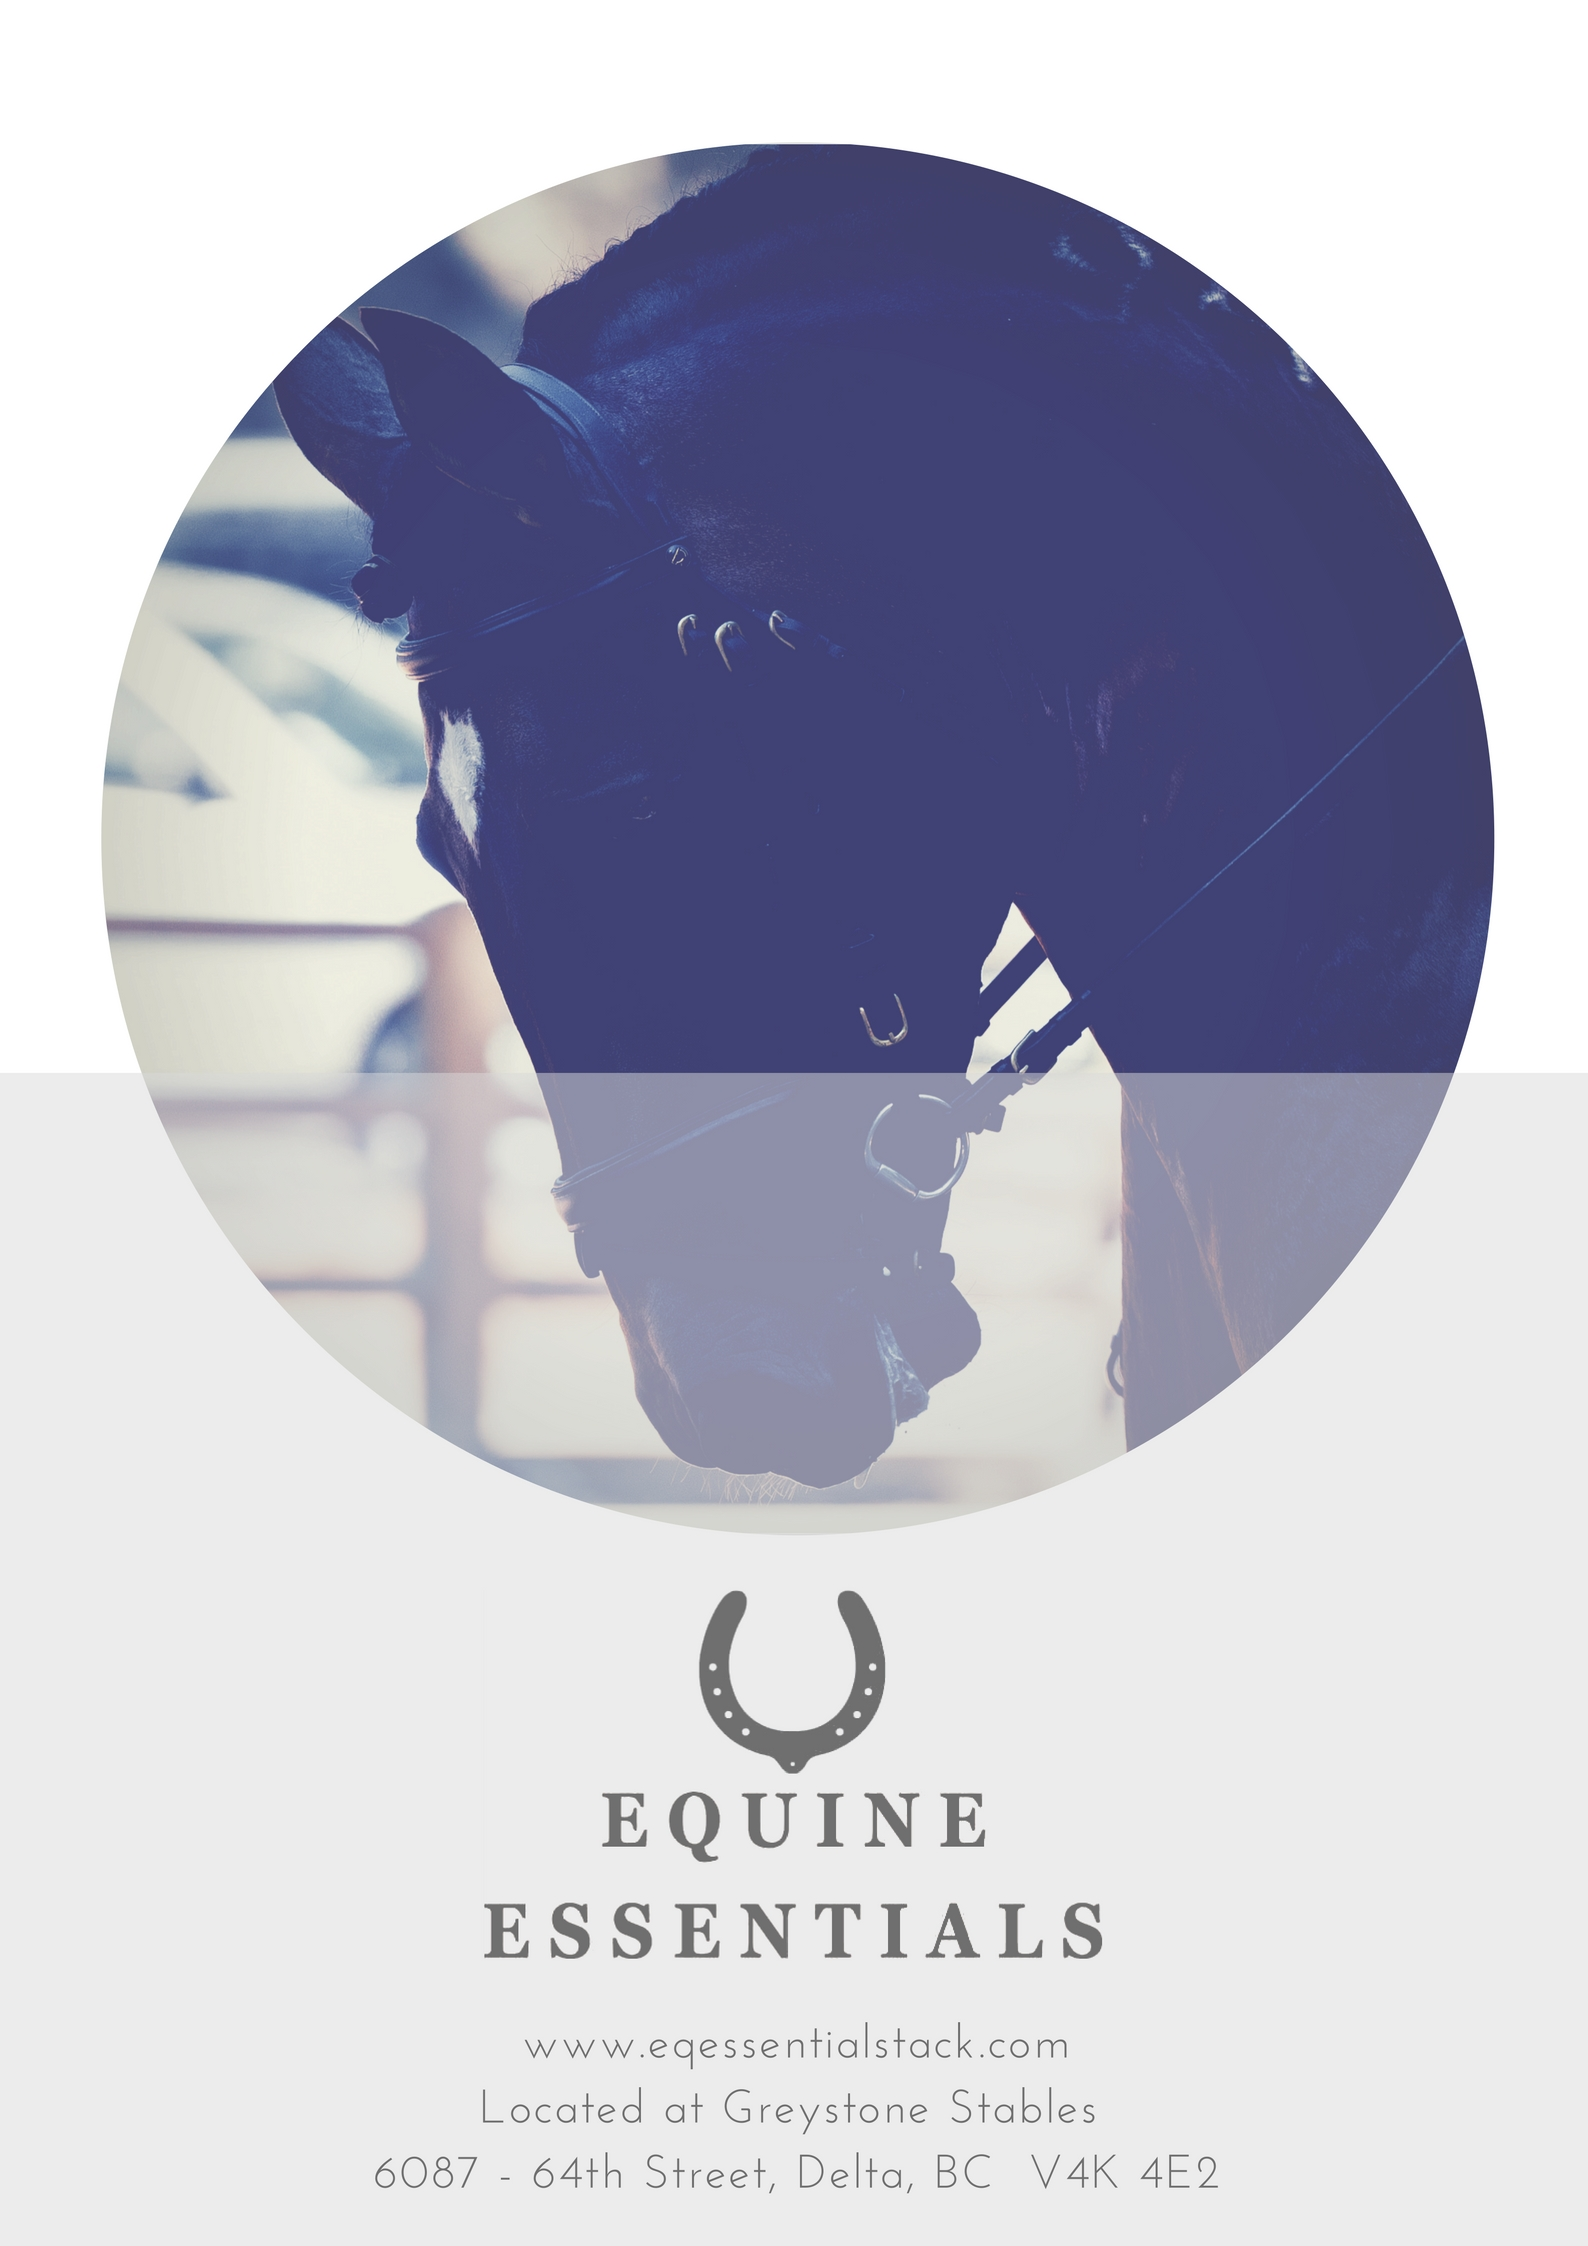 Equine Essentials One Page Ad.jpg